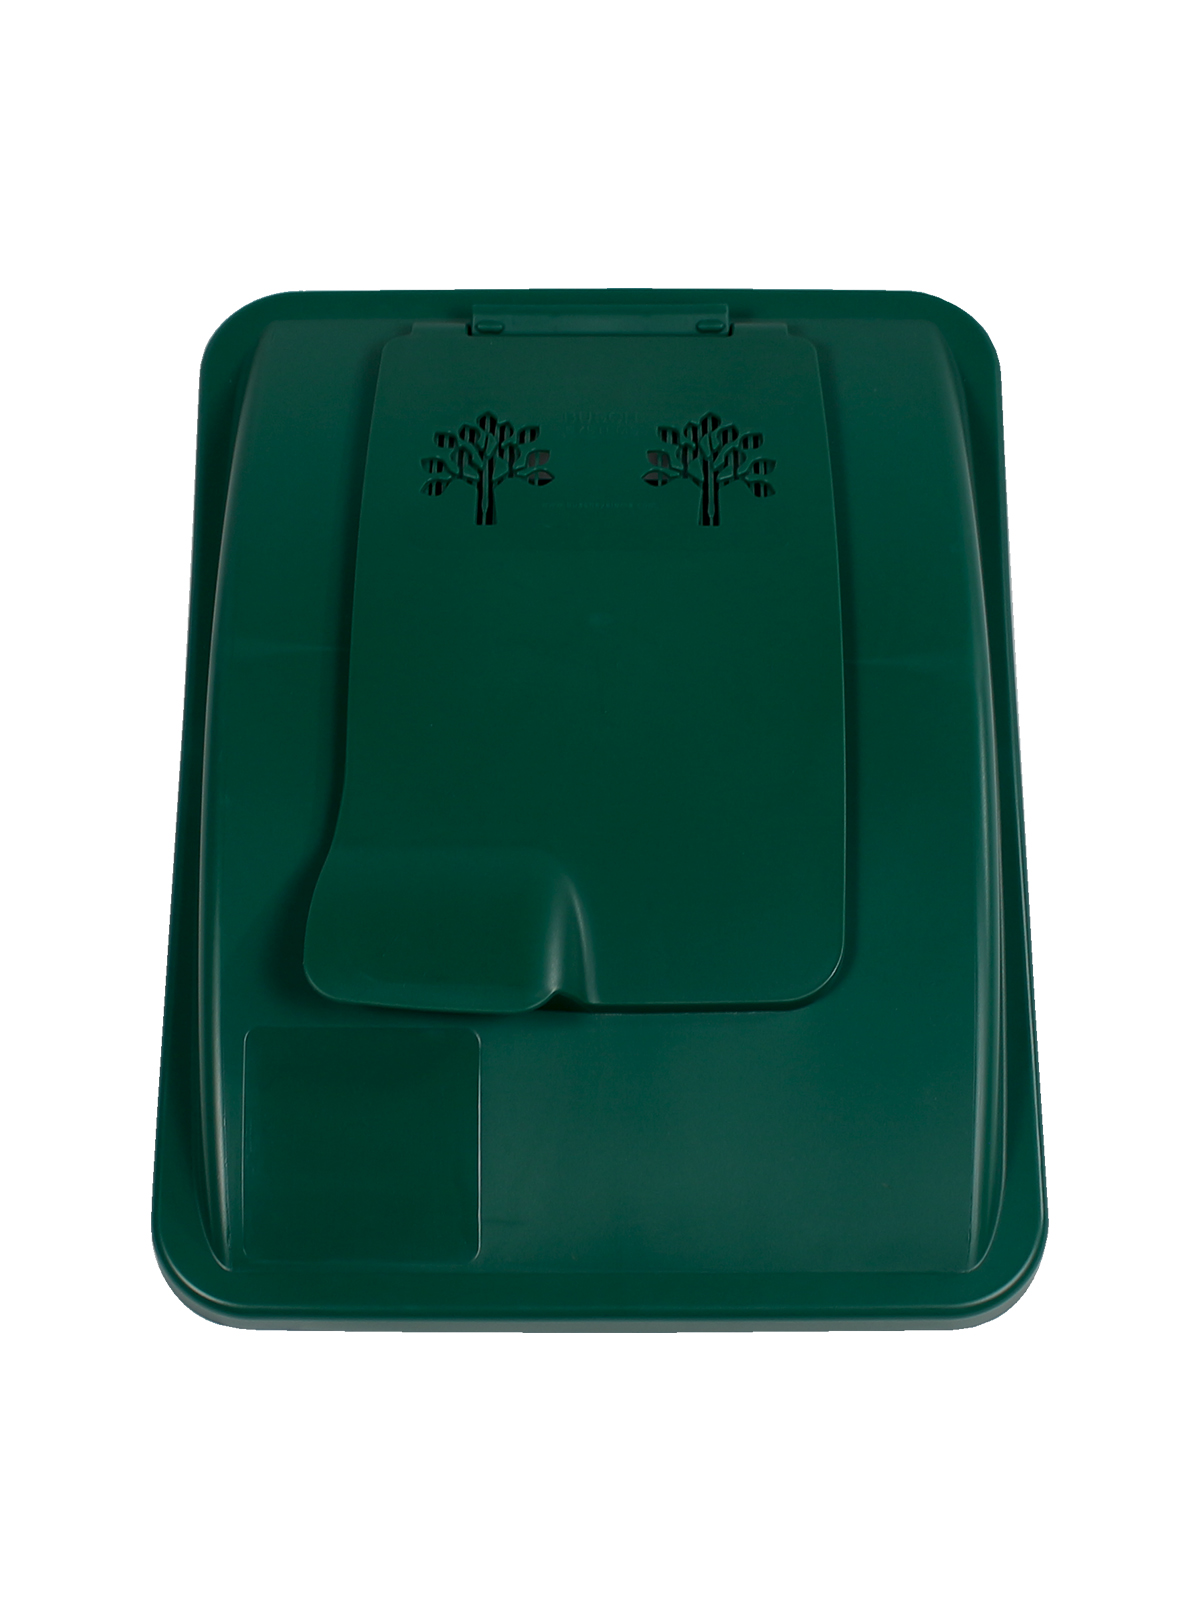 WASTE WATCHER® XL - LIFT LID - VENTED OPENING - DARK GREEN title=